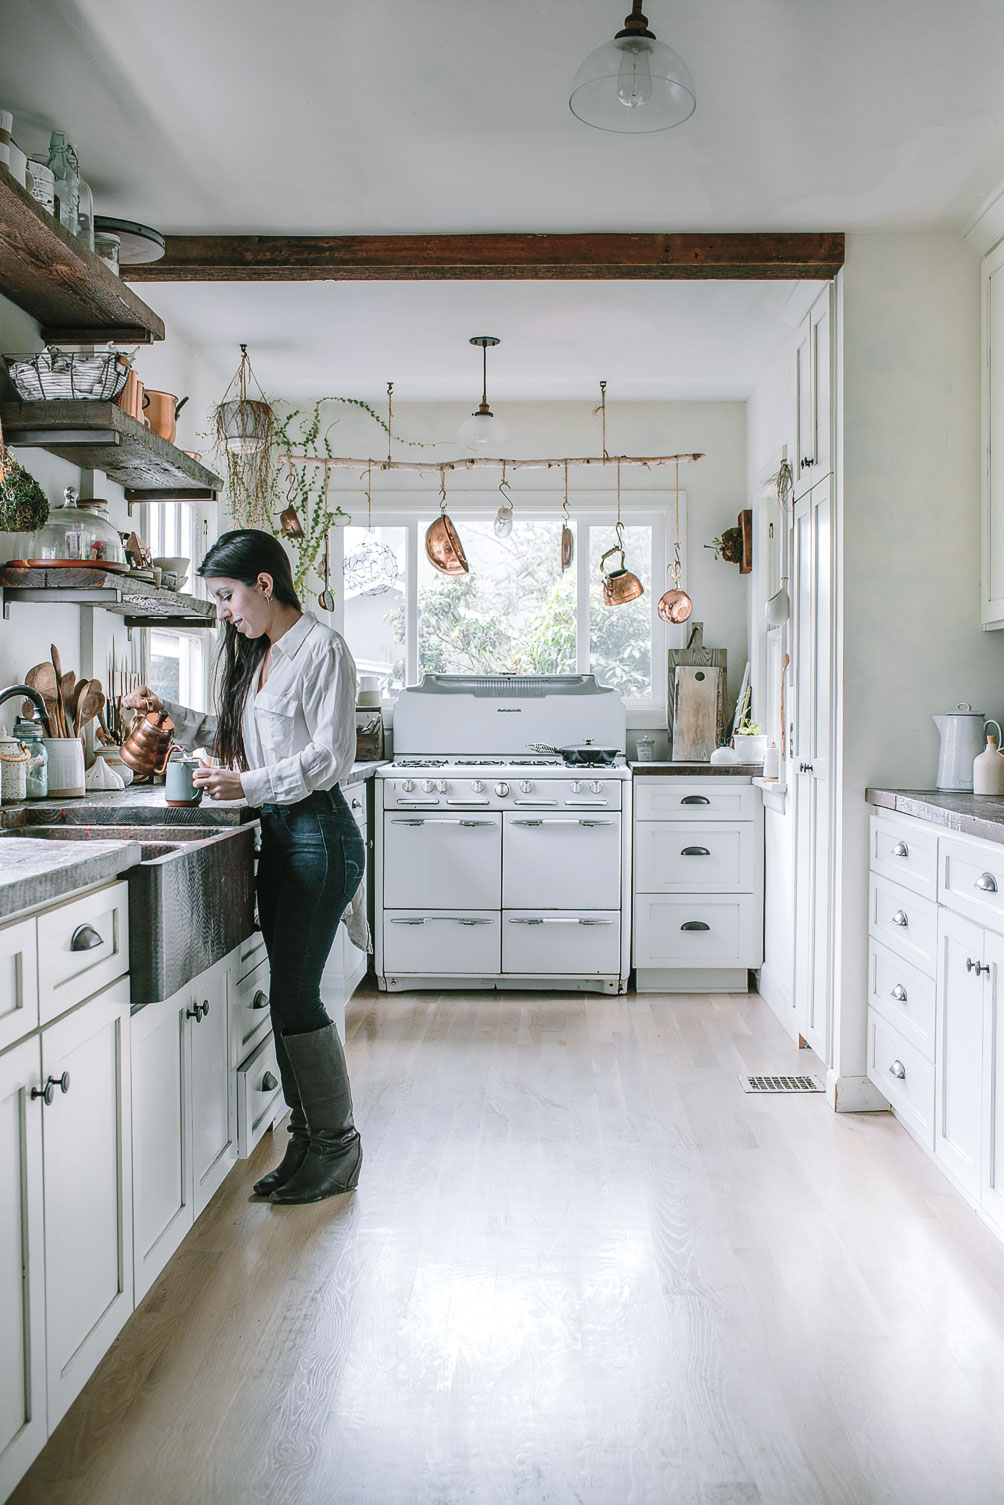 11 Ways to Add Moody Character to Every Room - Sunset Magazine